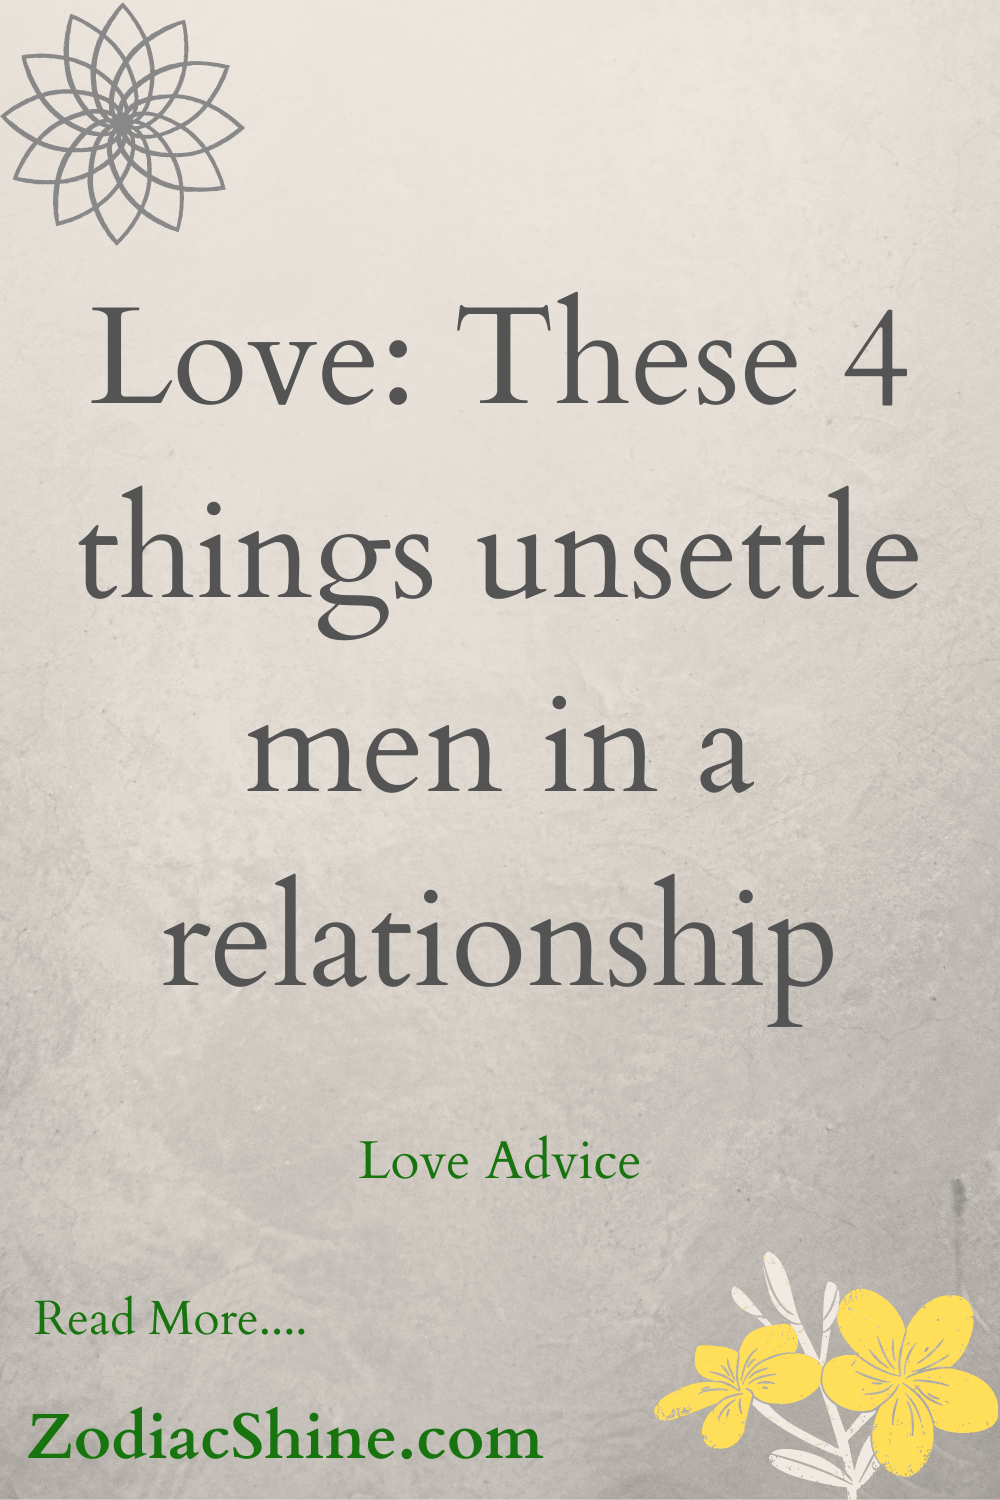 Love: These 4 things unsettle men in a relationship